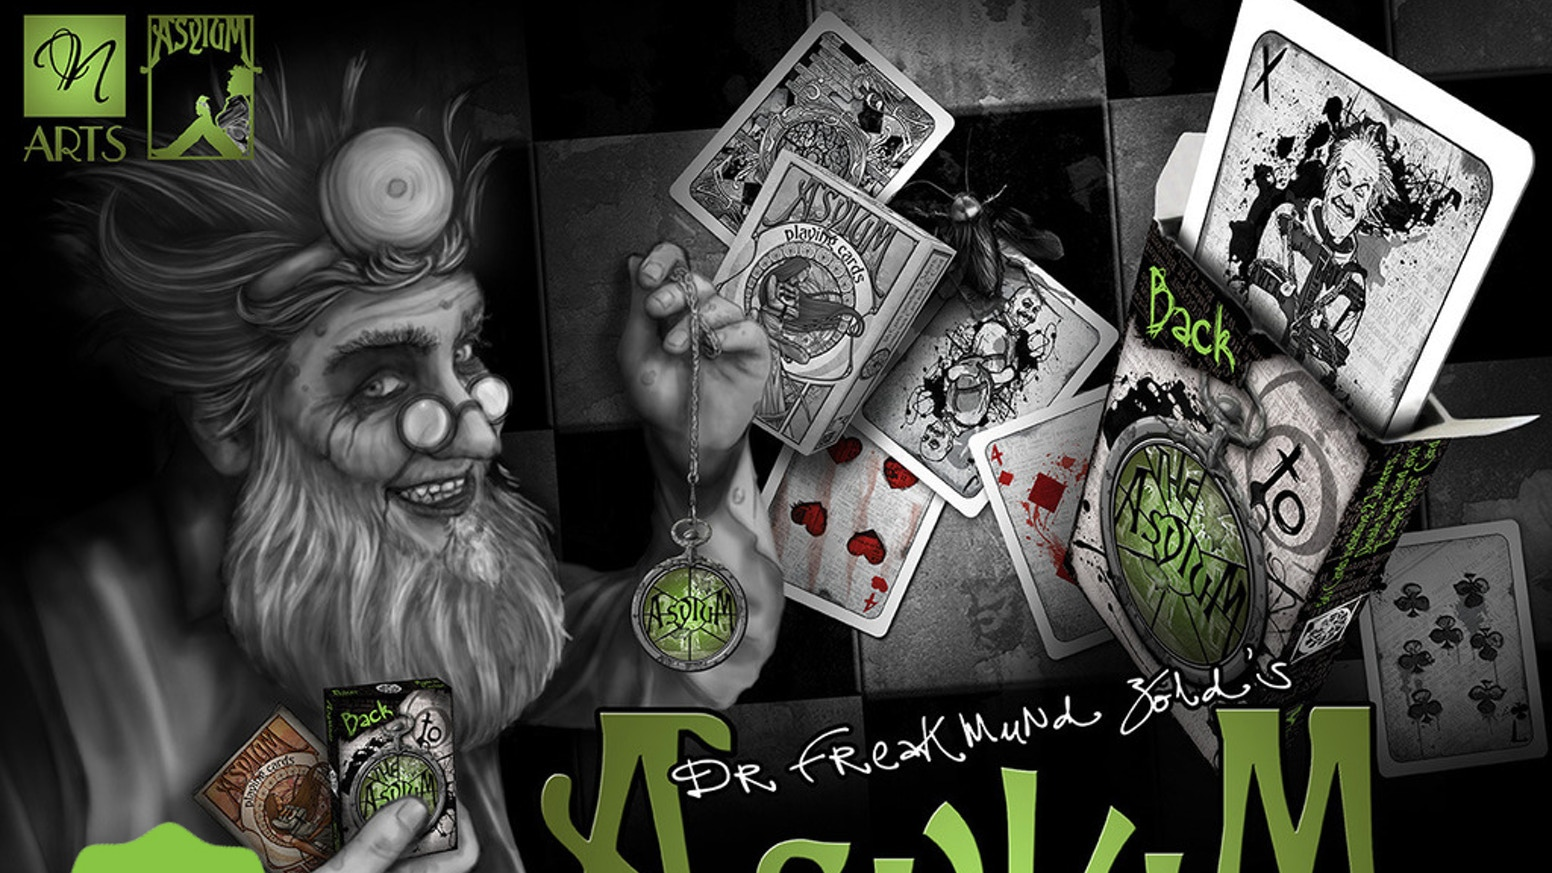 """Something old, something new, face the madness deja vu..."" Moment of madness embodied in two beautifully deranged decks of cards!"